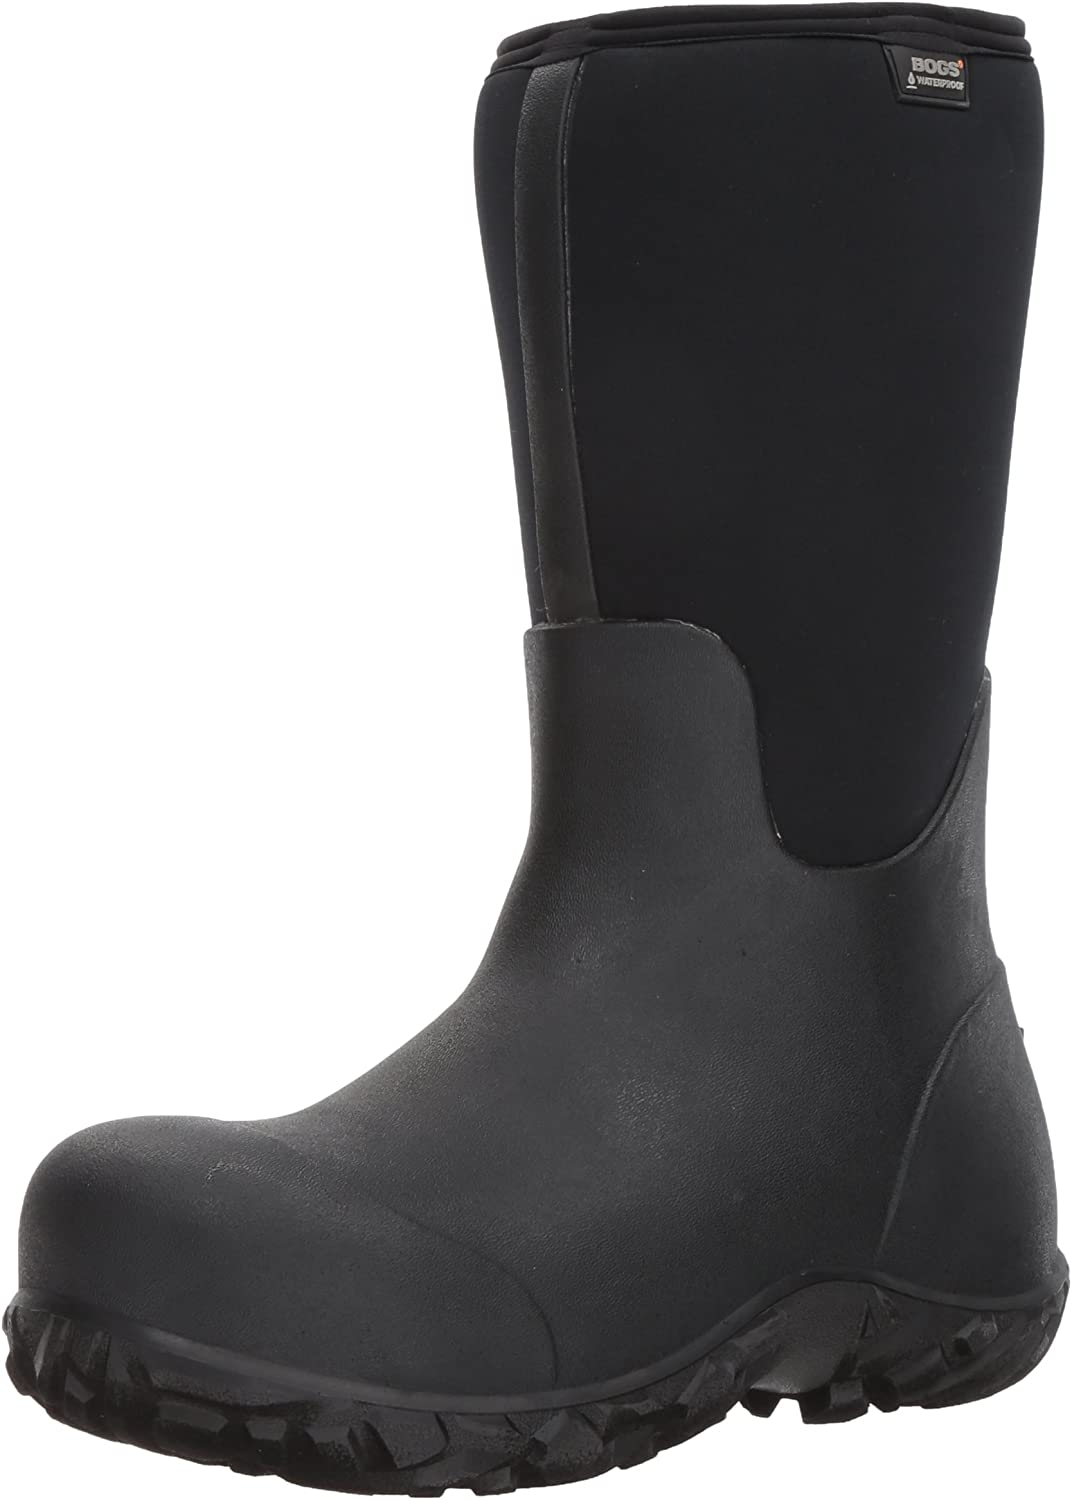 Bogs Men's Workman Composite Toe Boot, Black, 7 D(M) US